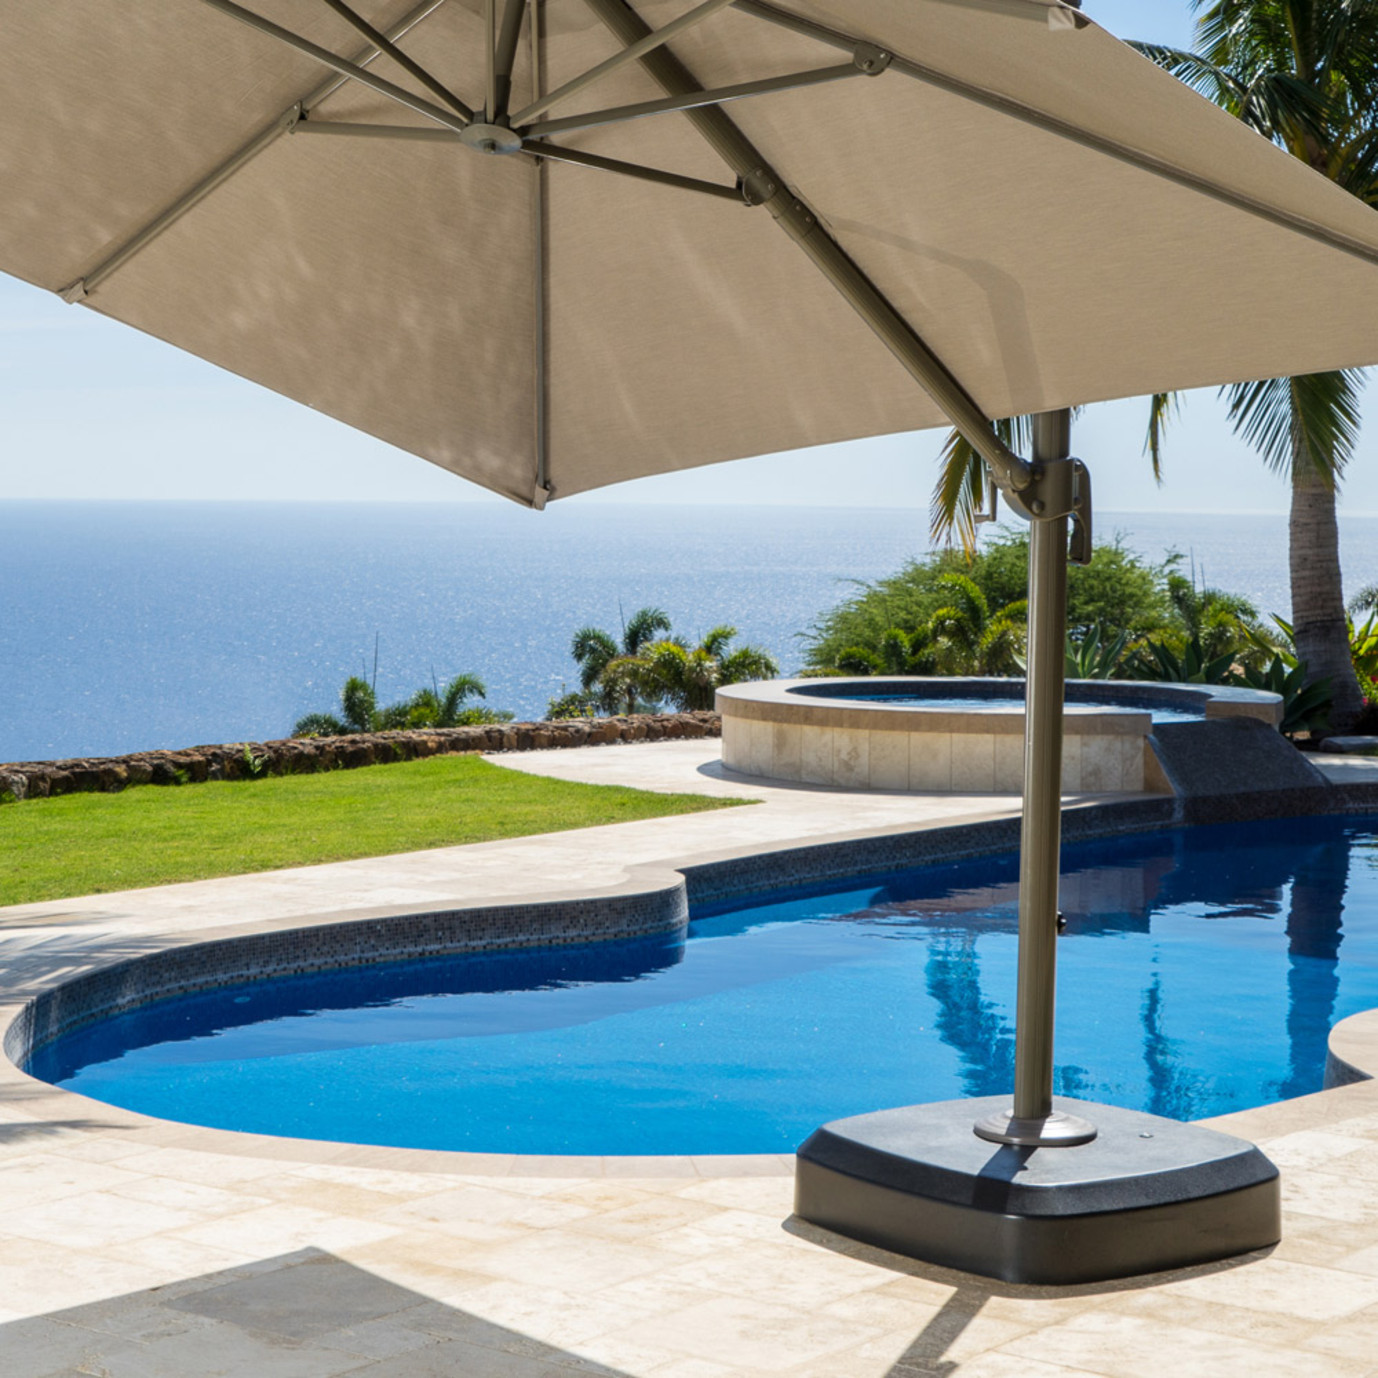 Portofino™ Comfort Umbrella Base with Foot Pedal